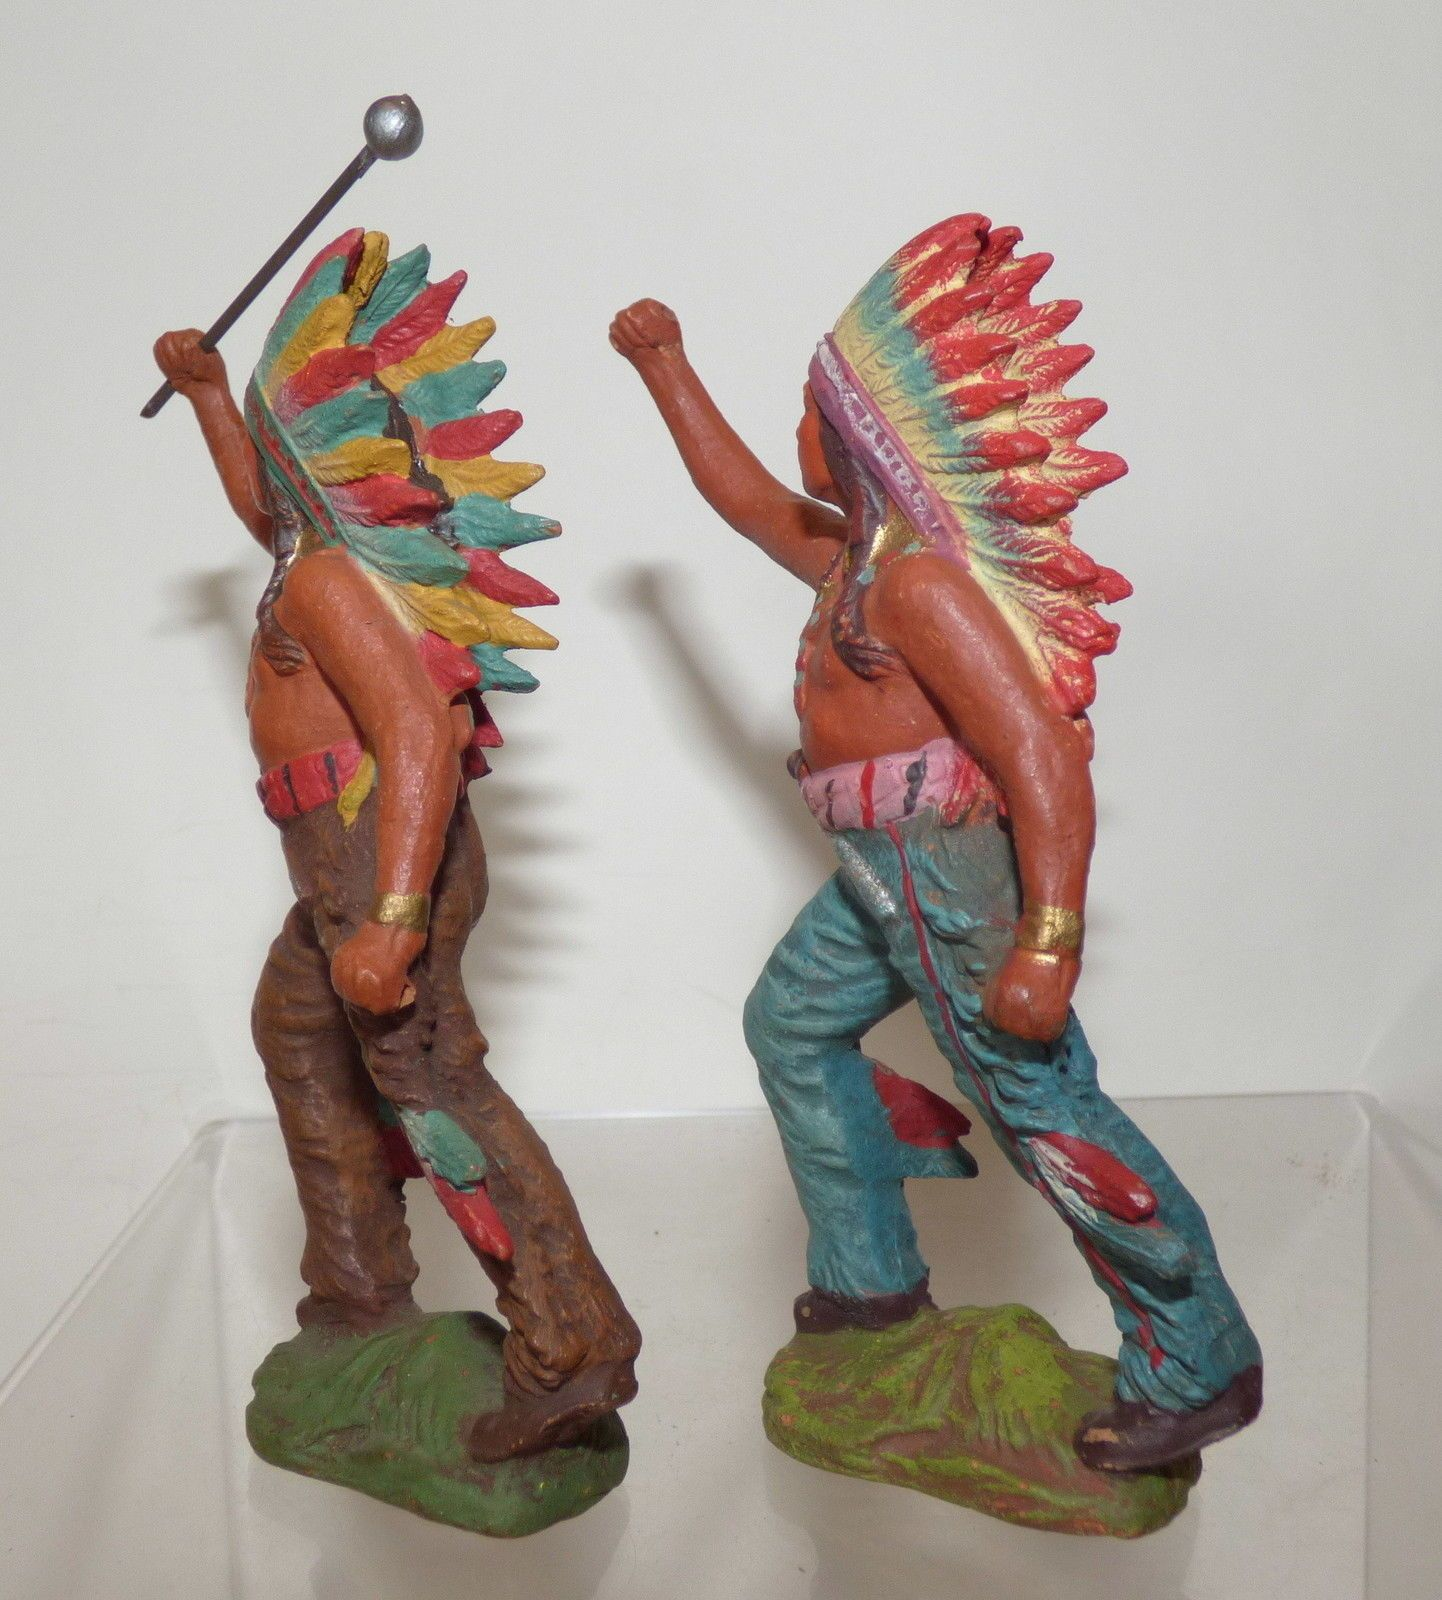 LC04 - 2 pcs 110 mm Pfeiffer N A Indians with bolus | eBay